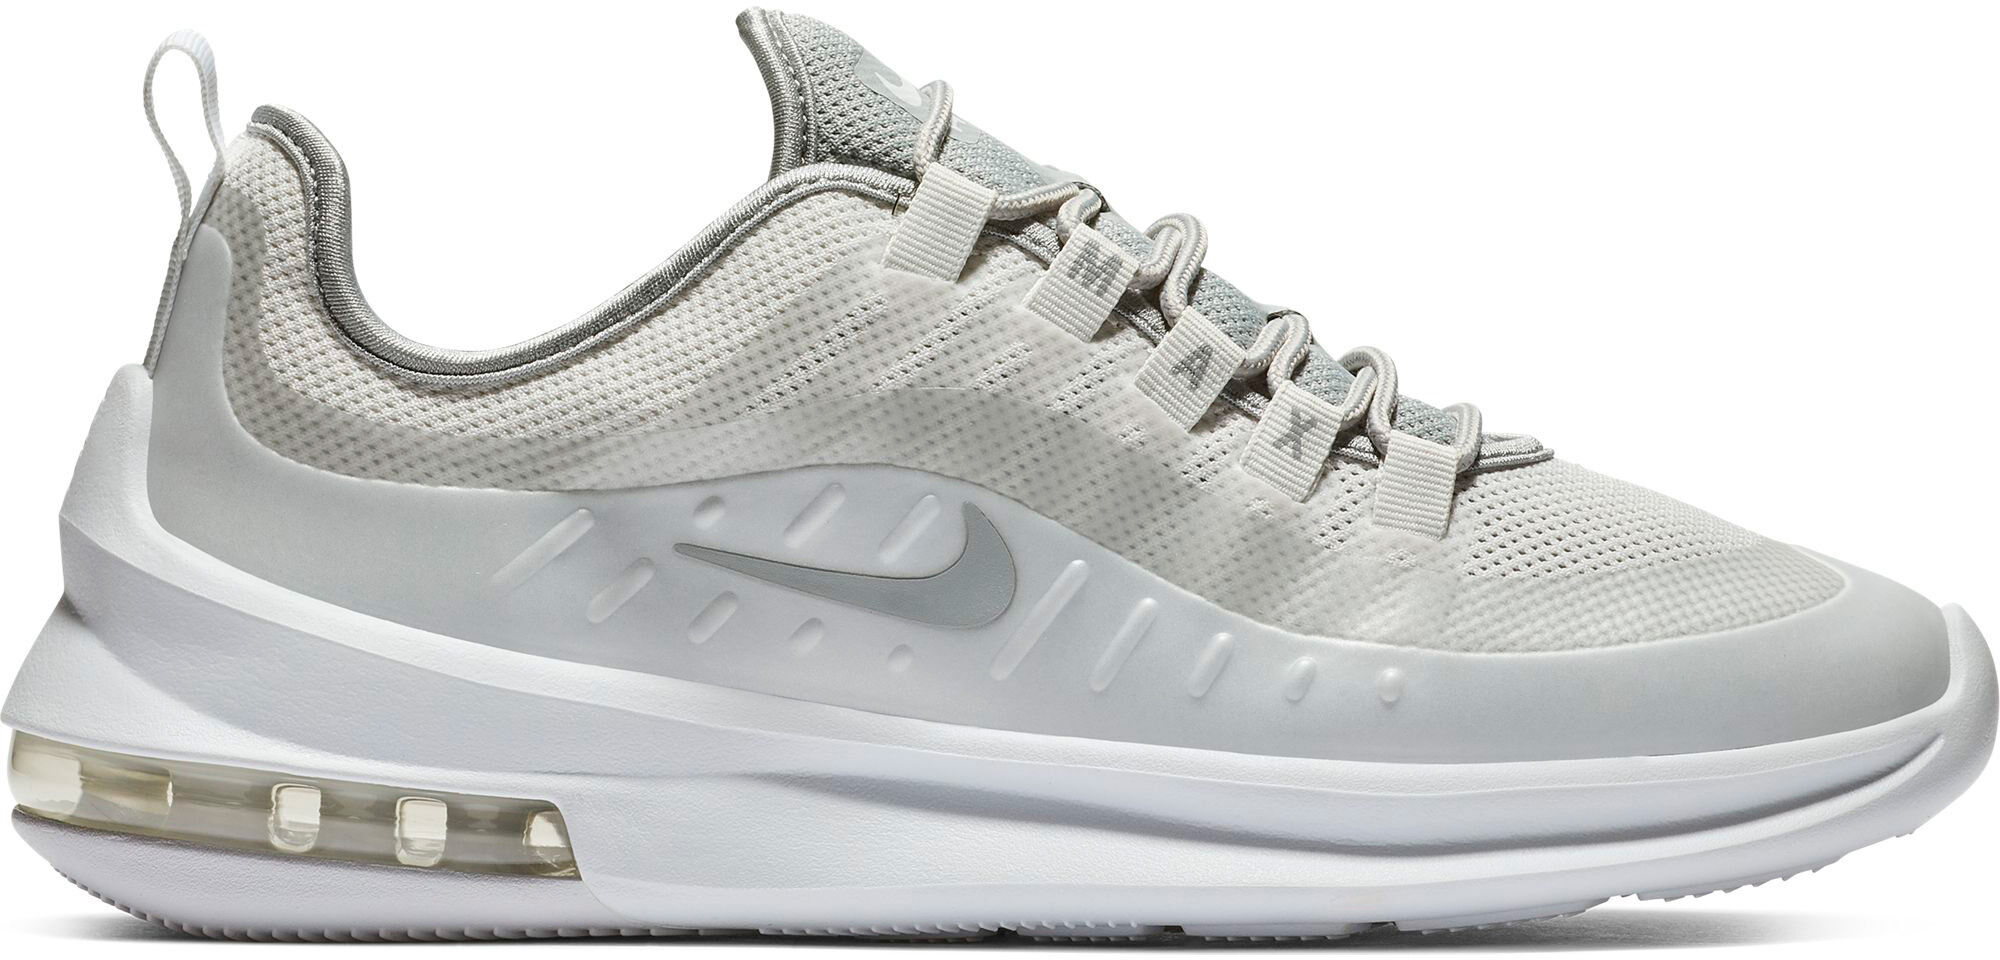 Outlet de sneakers Nike Air Max Axis Intersport Nike mujer